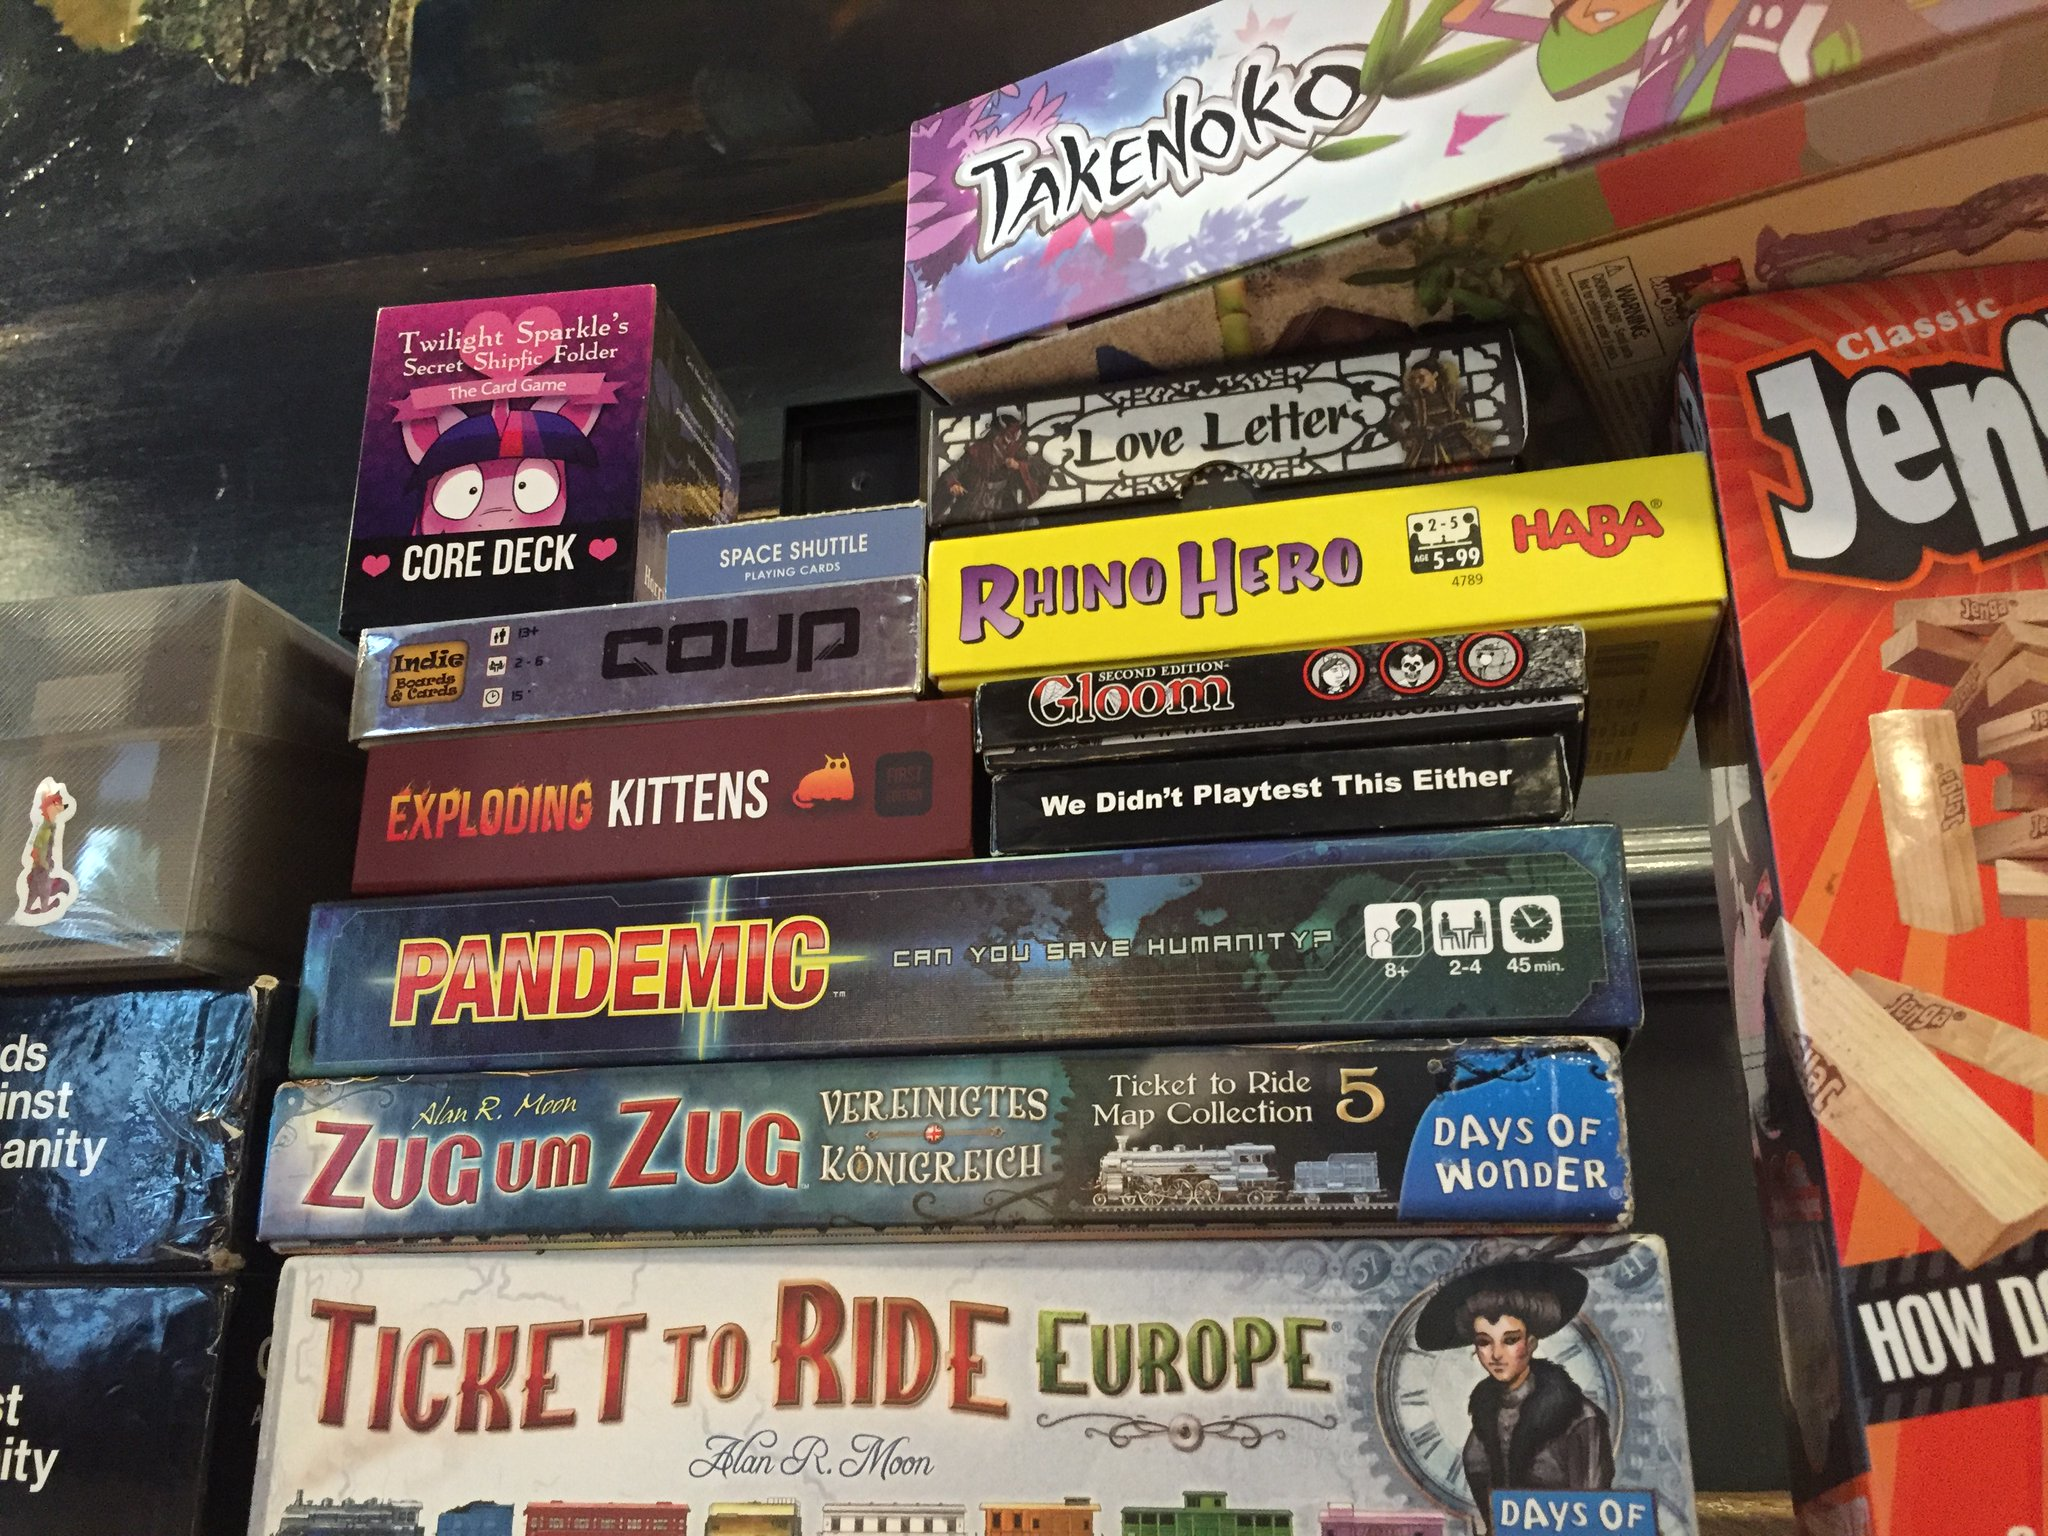 A large pile of tabletop games, including Takenoko, Twilight Sparkle's Secret Shipfic Folder, Love Letter, Coup, Rhino Hero, Gloom, Exploding Kittens, We Didn't Playtest This Either, Pandemic, Ticket to Ride, Jenga, and Cards Against Humanity.